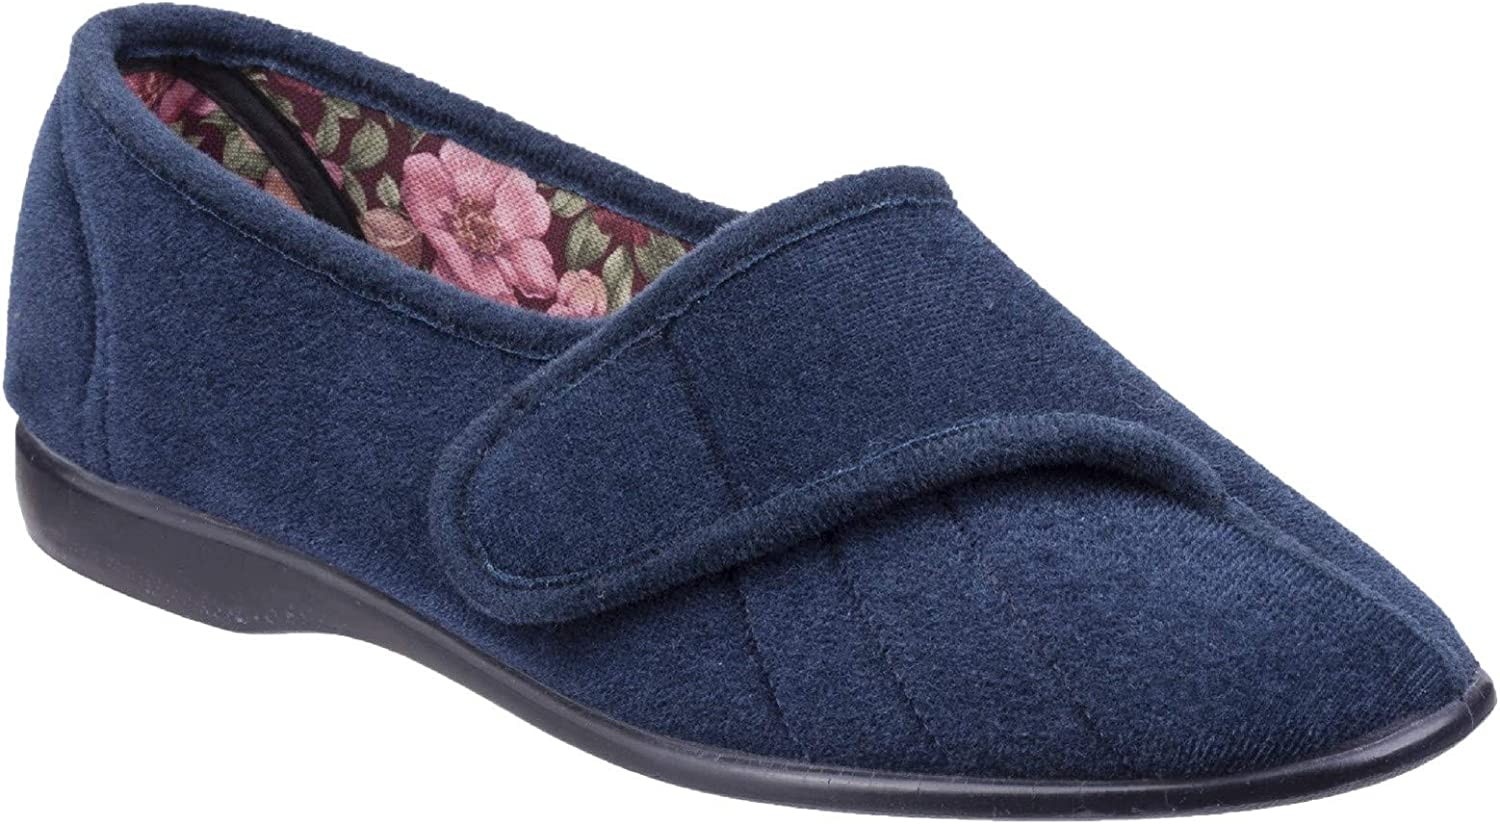 GBS Womens Audrey Velcro Womens Slipper Navy Size UK 9 EU 43